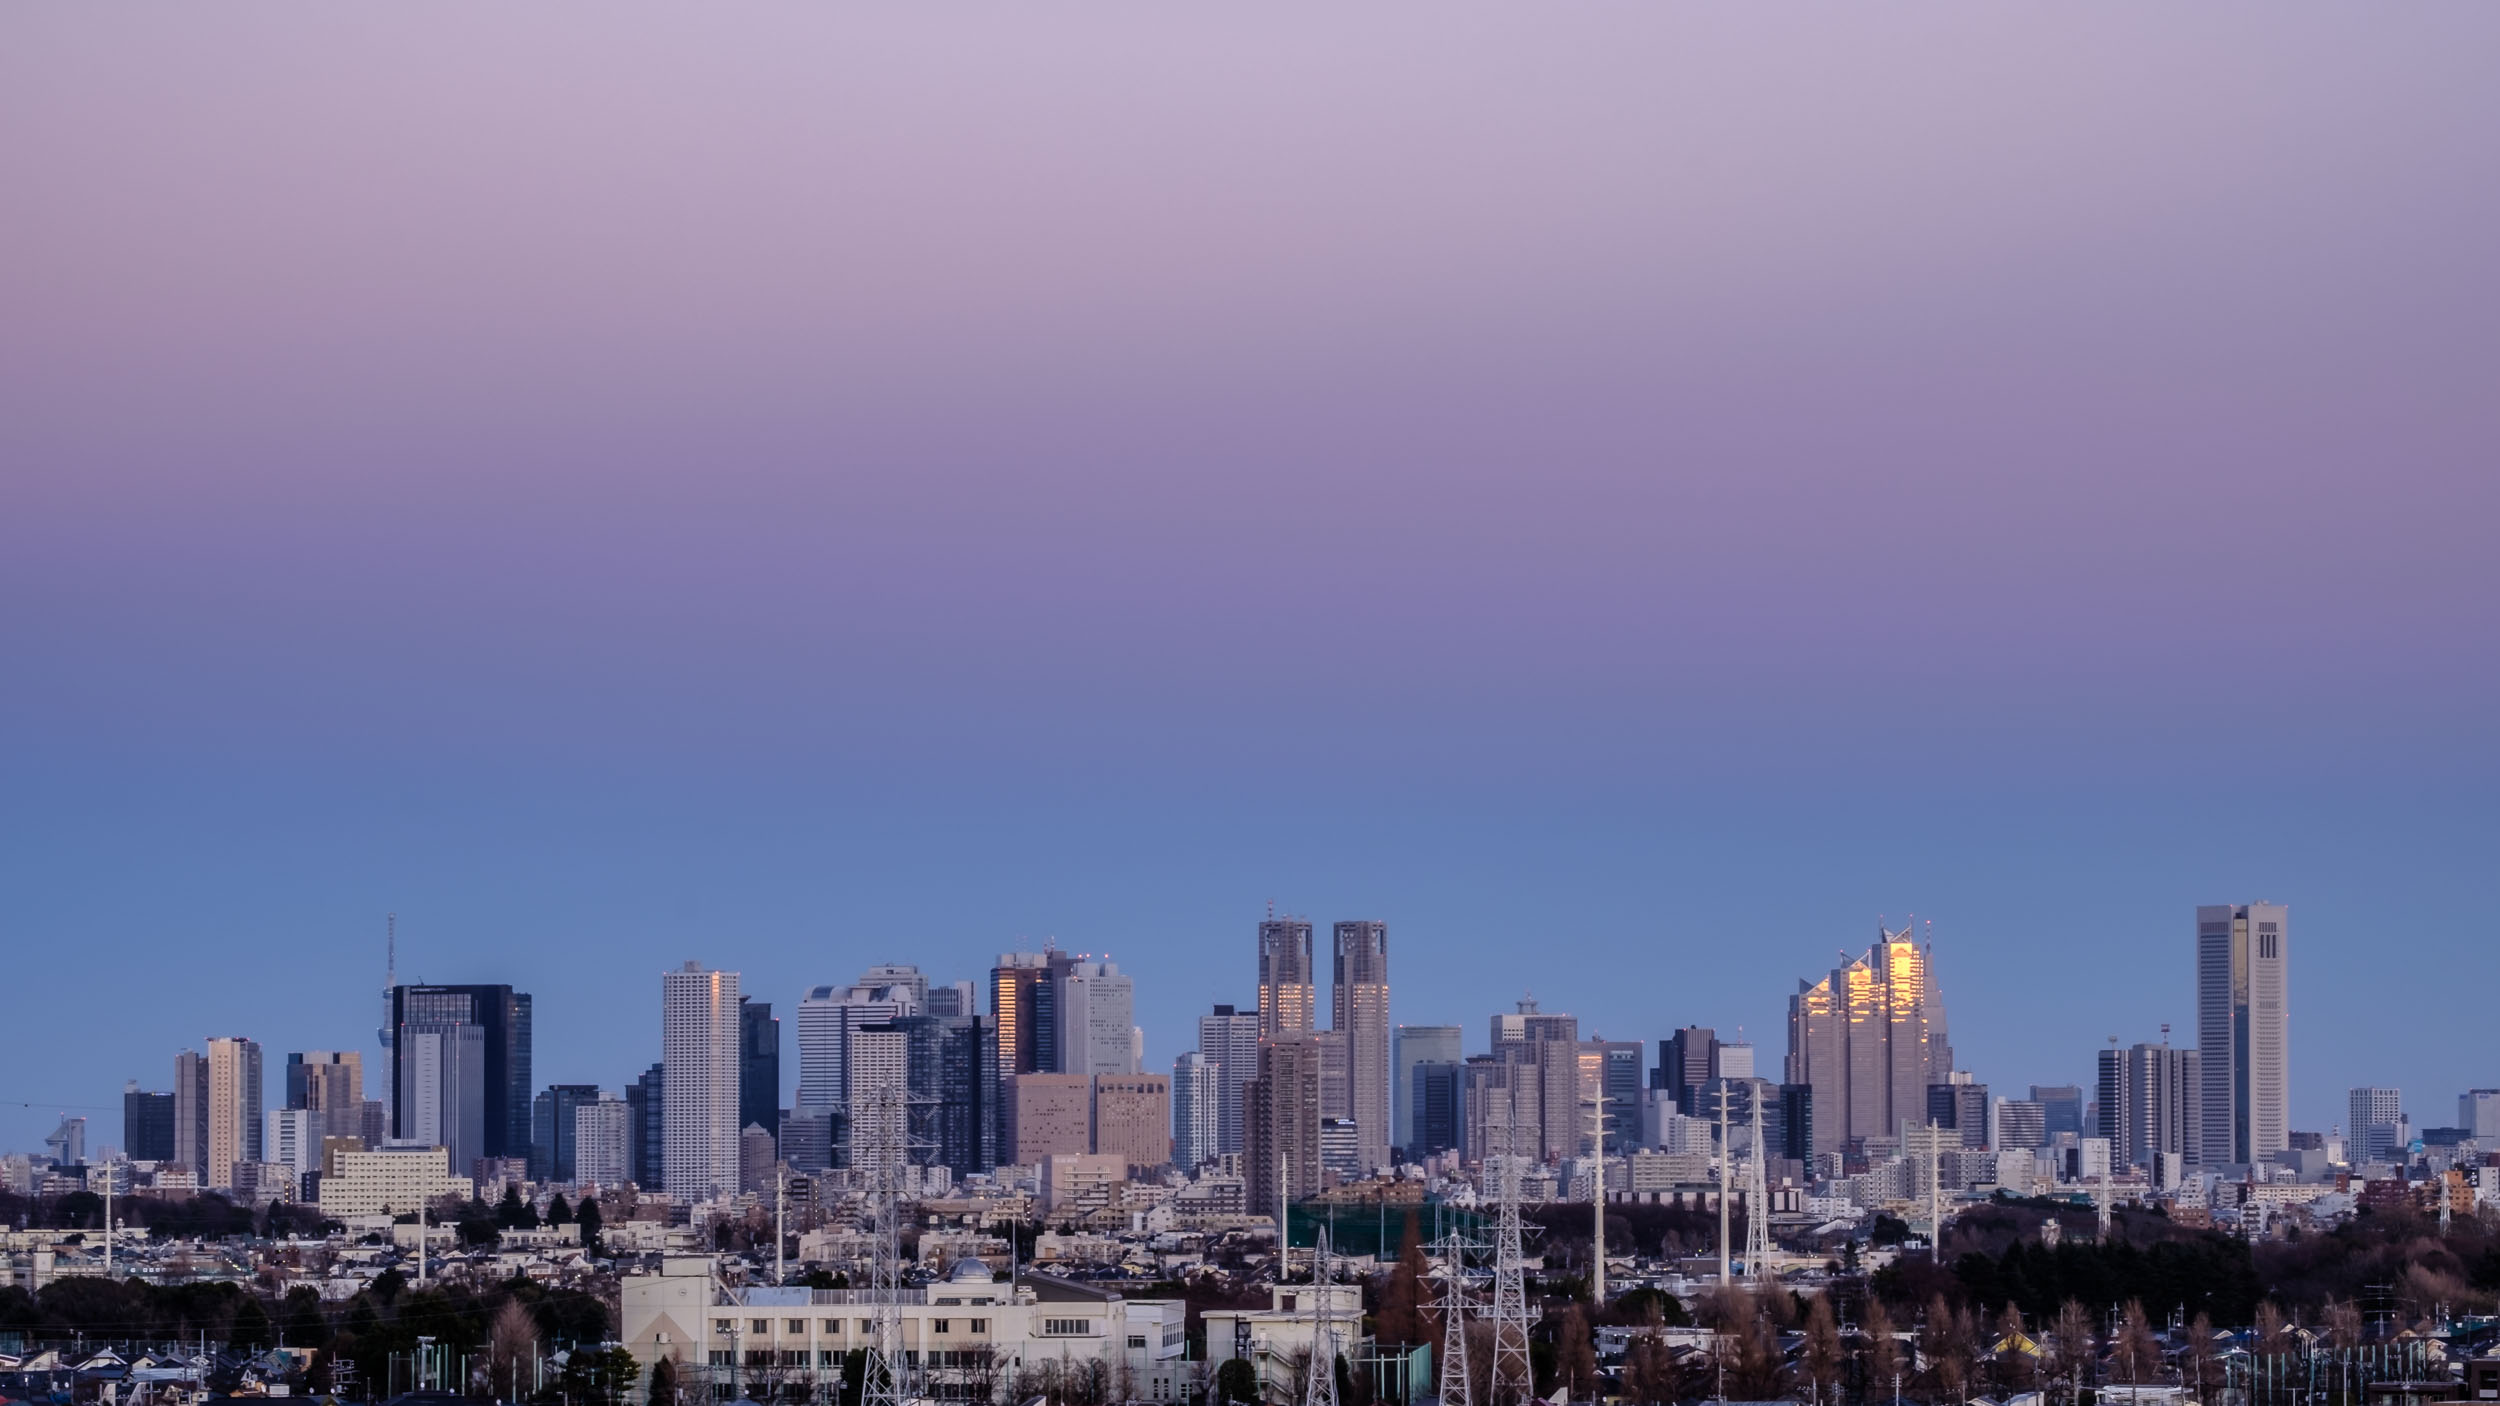 The Shinjuku skyline in the early evening